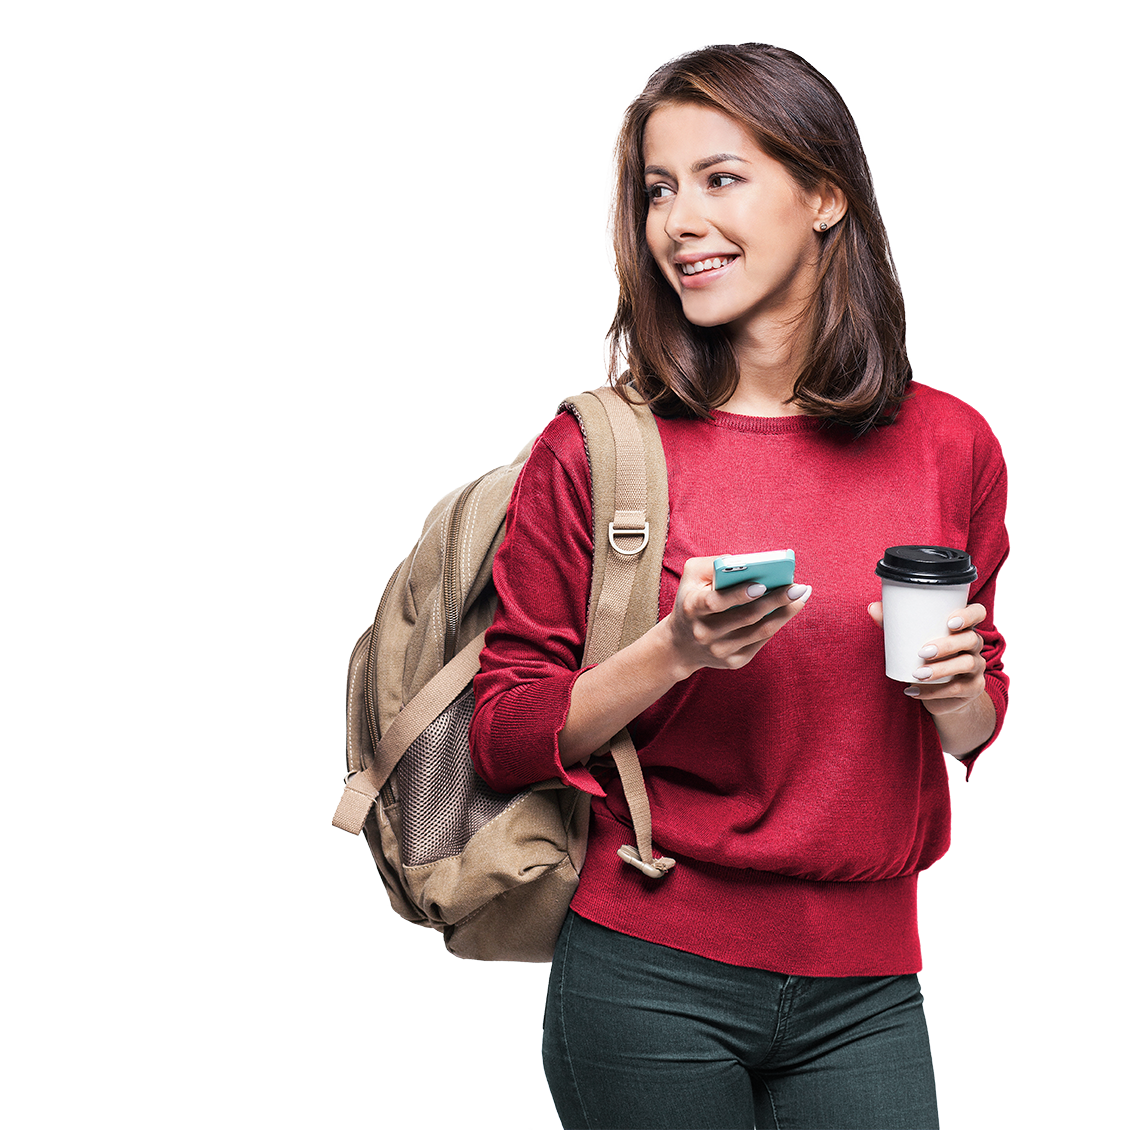 student_holding_coffeeLowRes.png